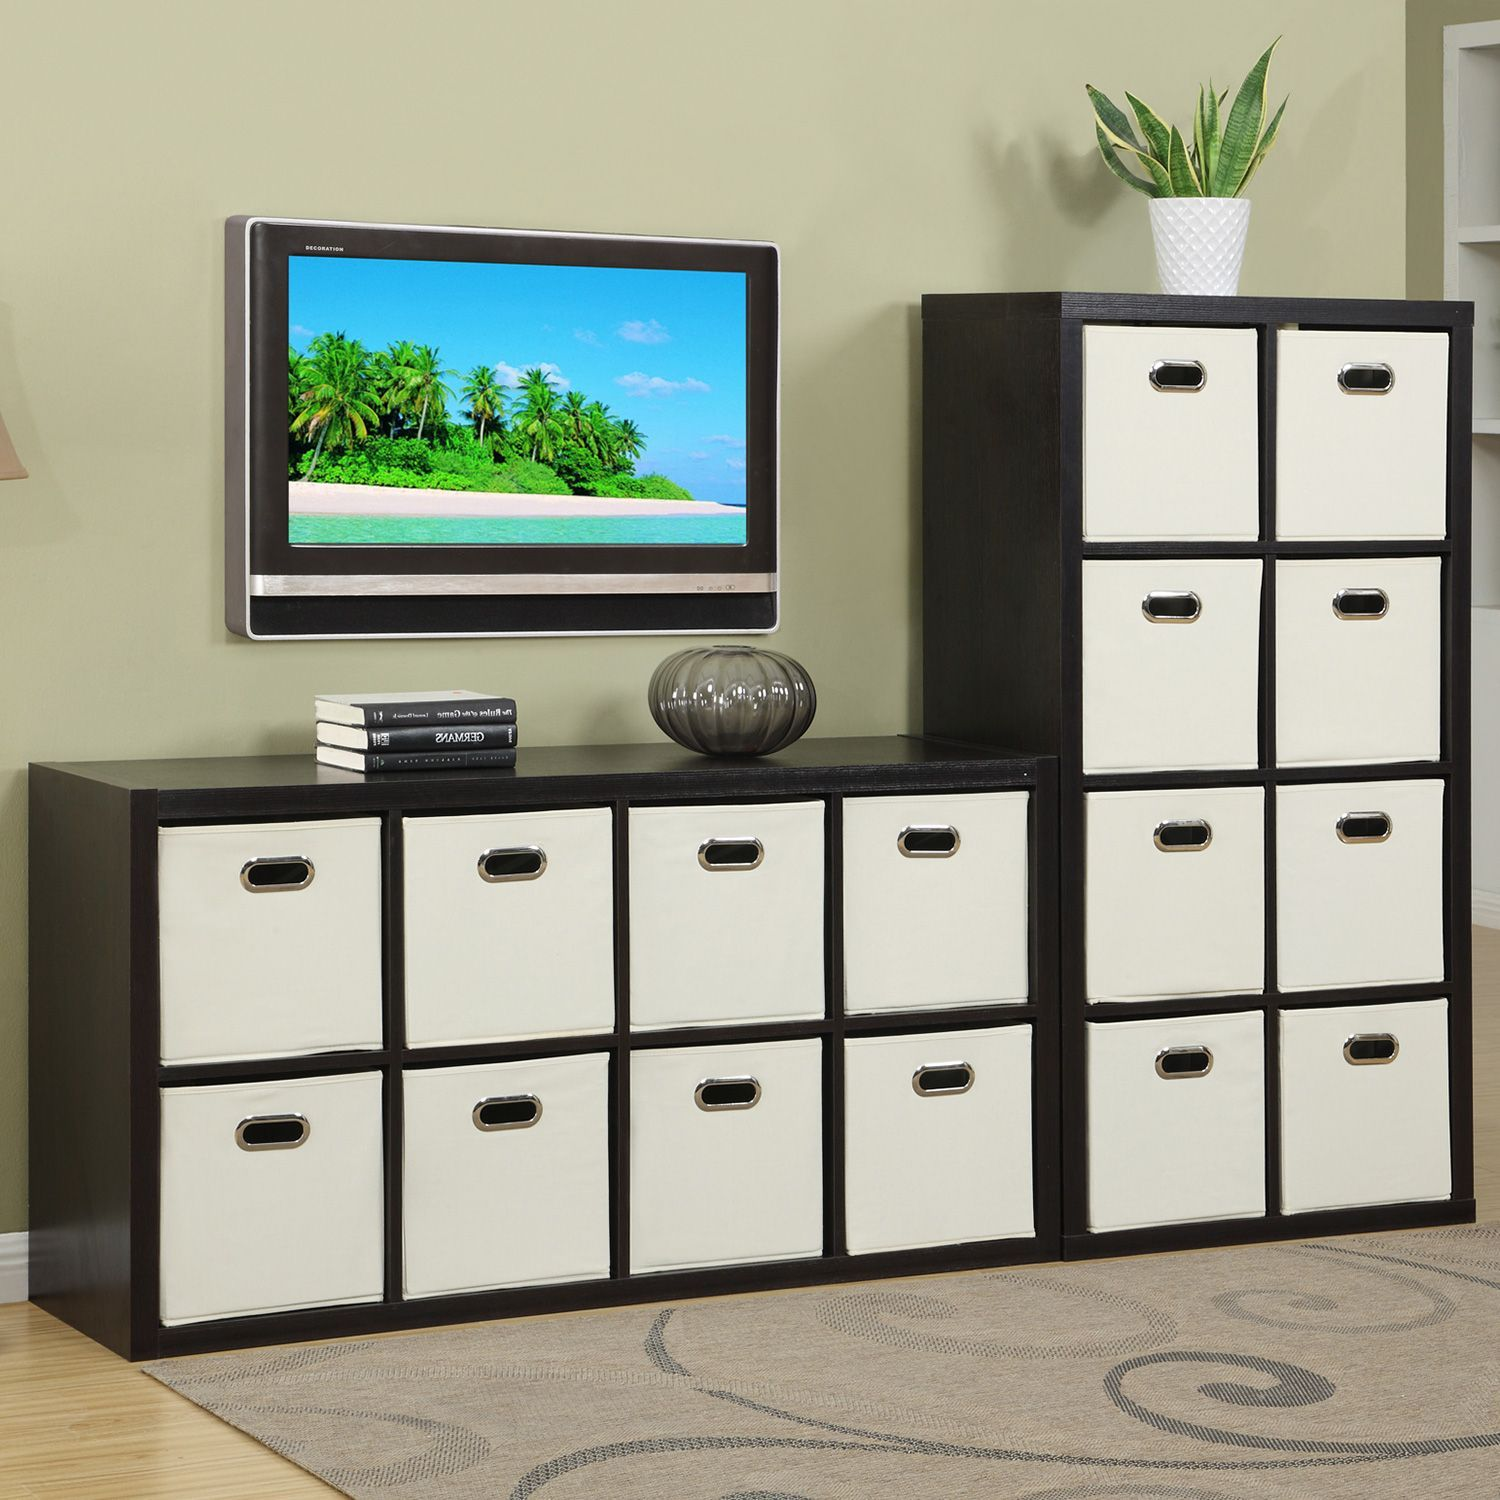 Eight cube room organizer cool stuff to buy room - Cool things to buy for your room ...